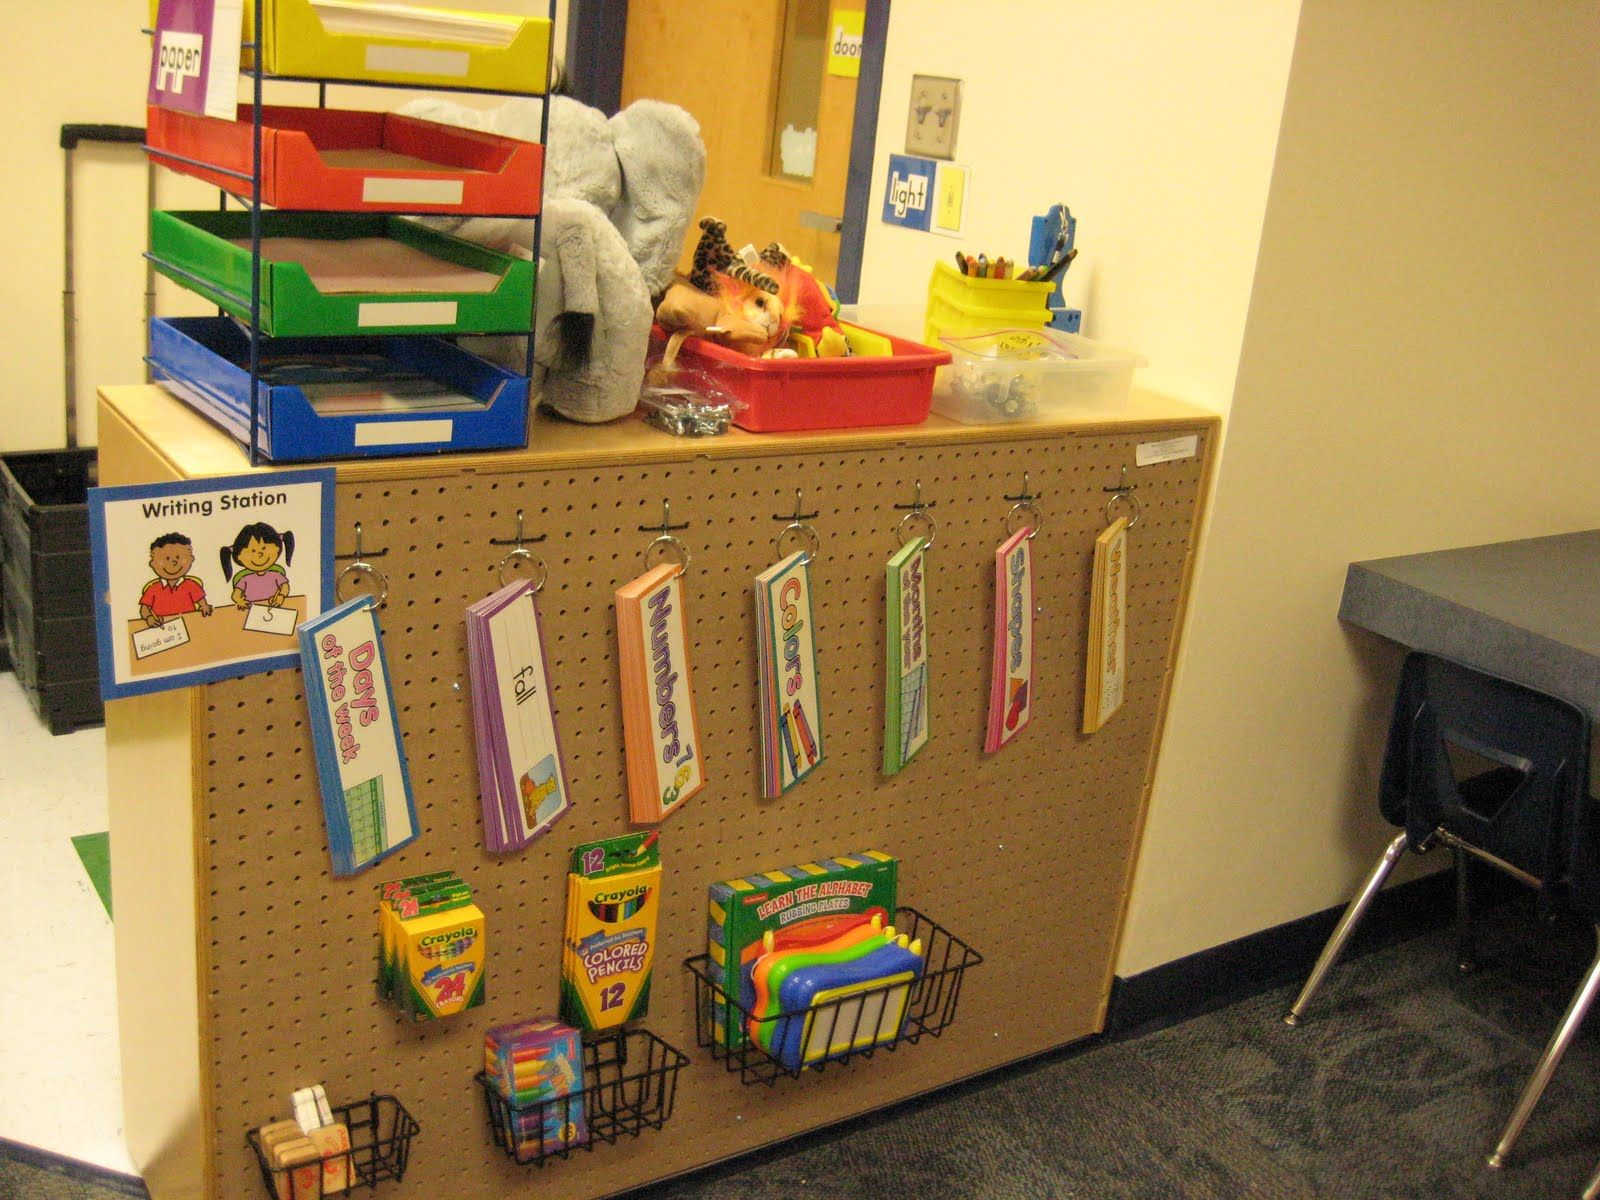 Storage Unit For Writing Materials Classroom